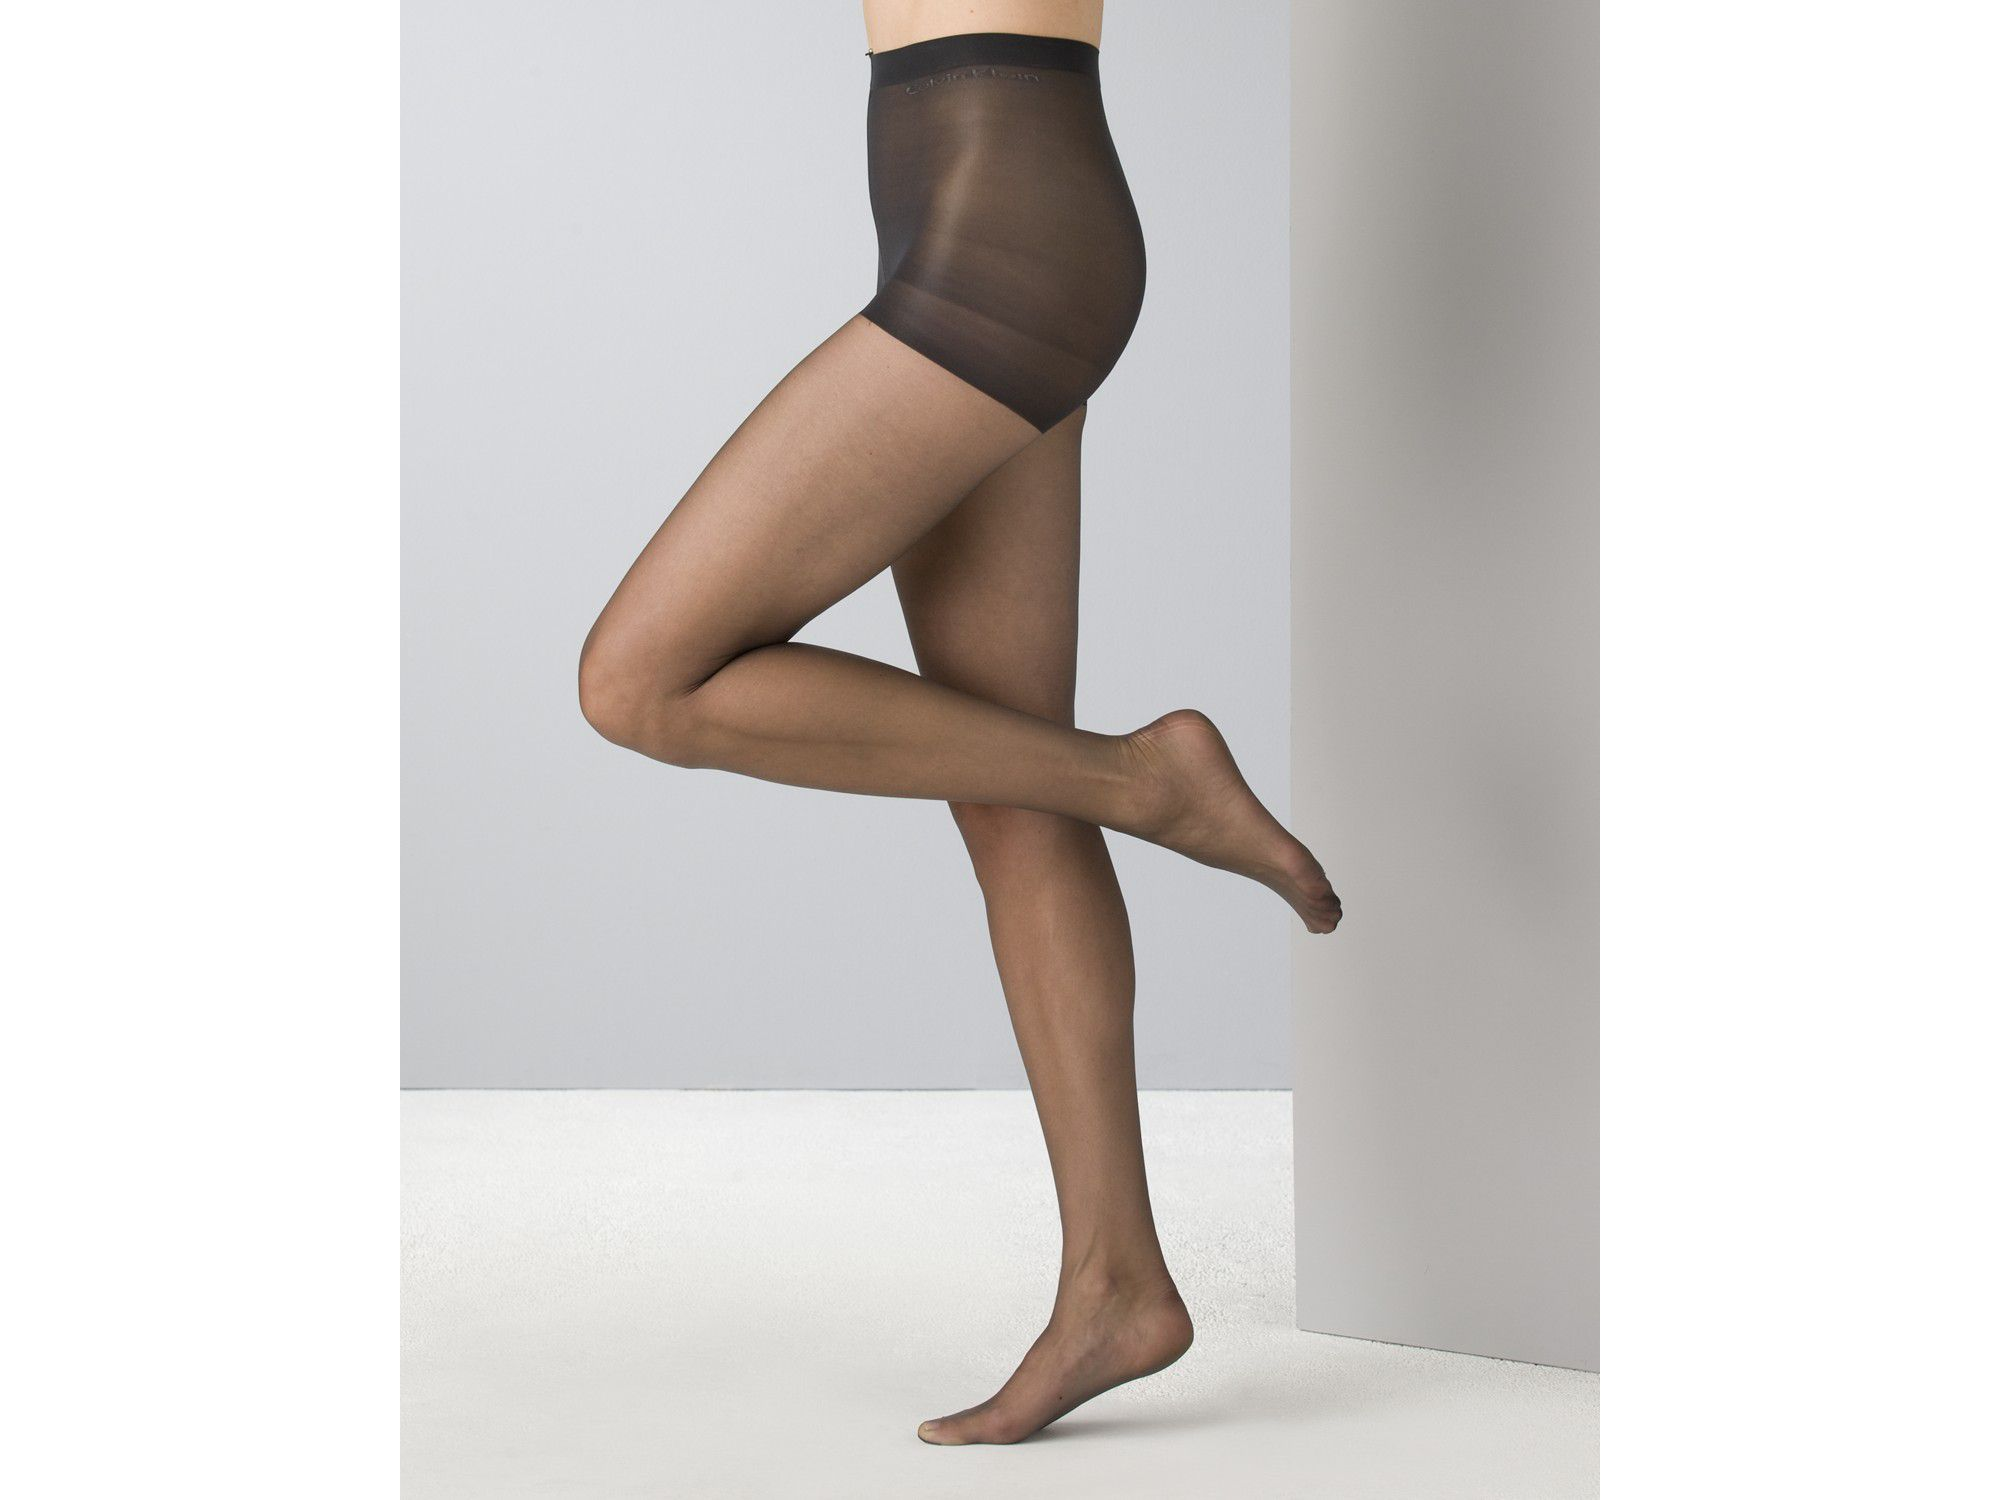 9d367a6d0 Calvin Klein Hosiery Infinite Sheer Control Top 705n in Black - Lyst